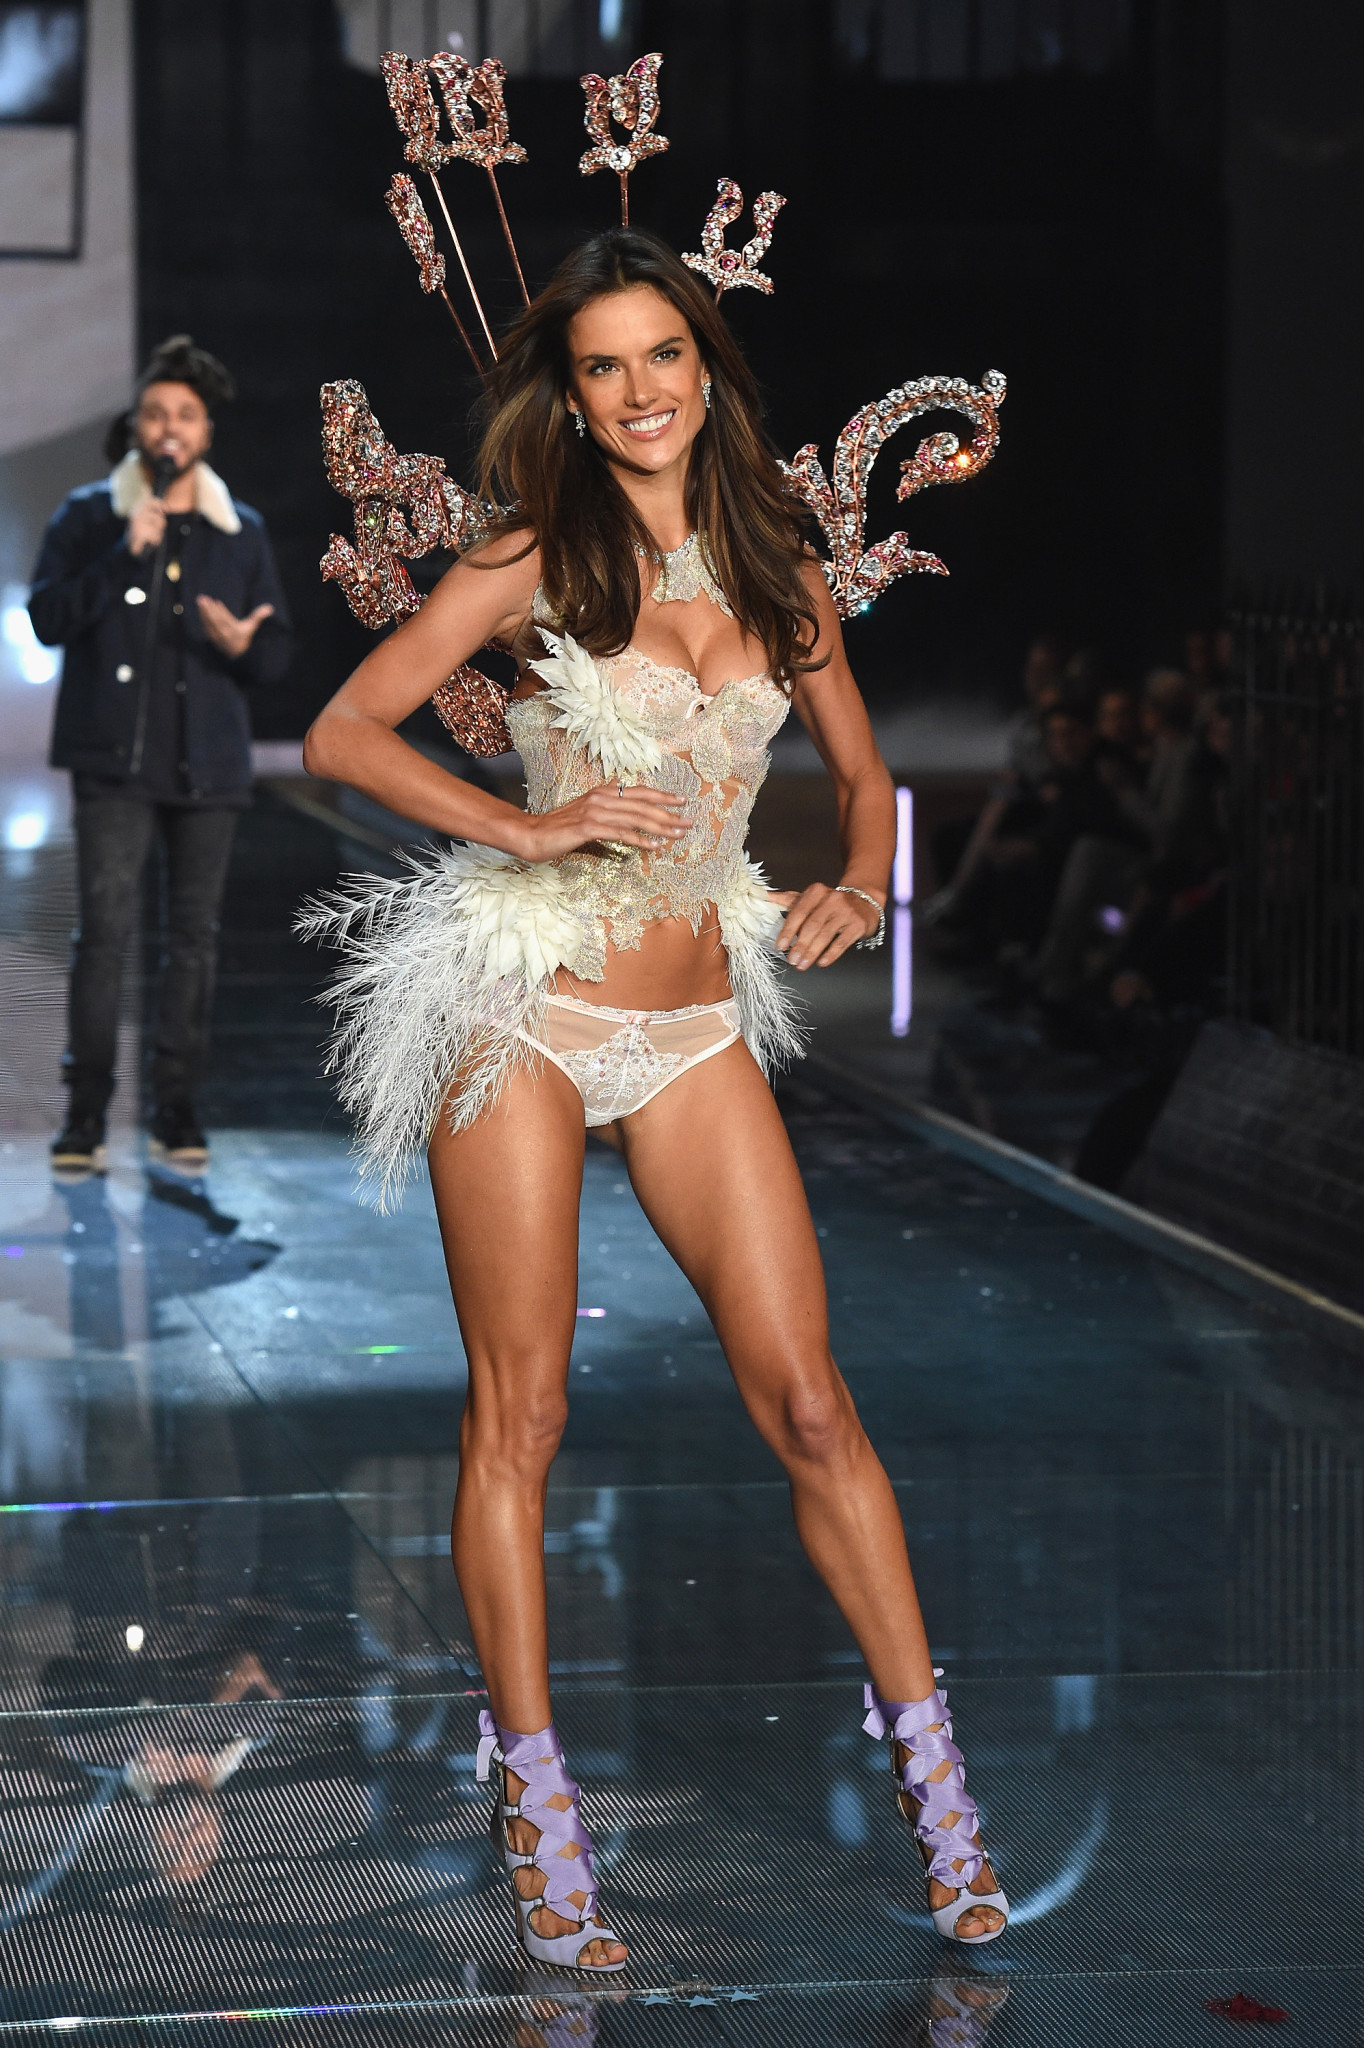 NEW YORK, NY - NOVEMBER 10: Model Alessandra Ambrosio walks the runway during the 2015 Victoria's Secret Fashion Show at Lexington Avenue Armory on November 10, 2015 in New York City.